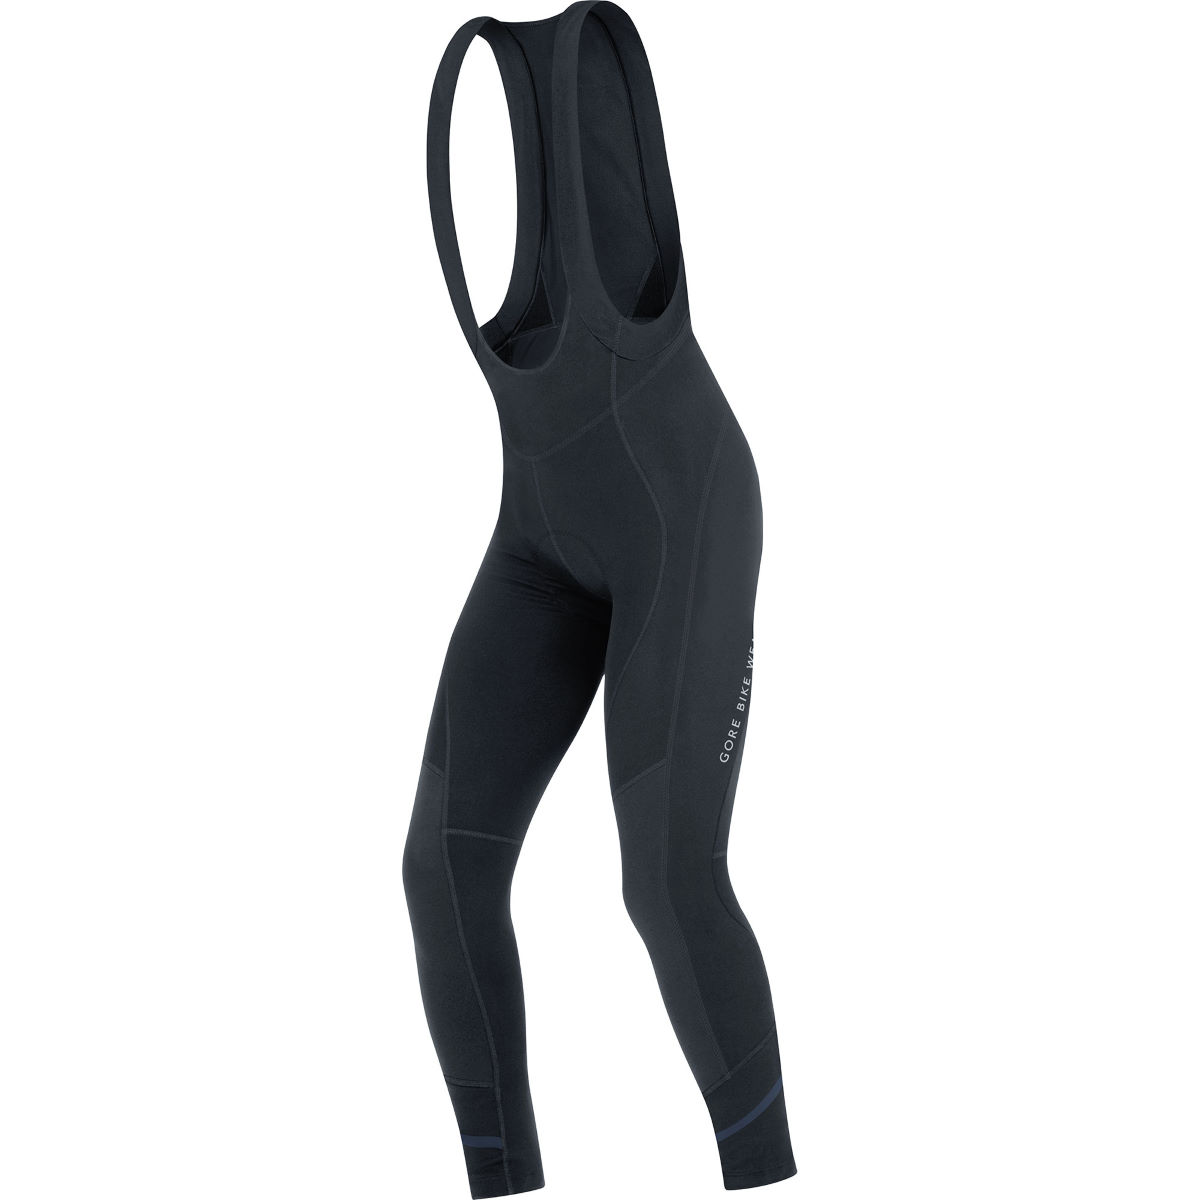 Gore Bike Wear - Power 3.0 Thermo Bib Tights+ - XL Noir